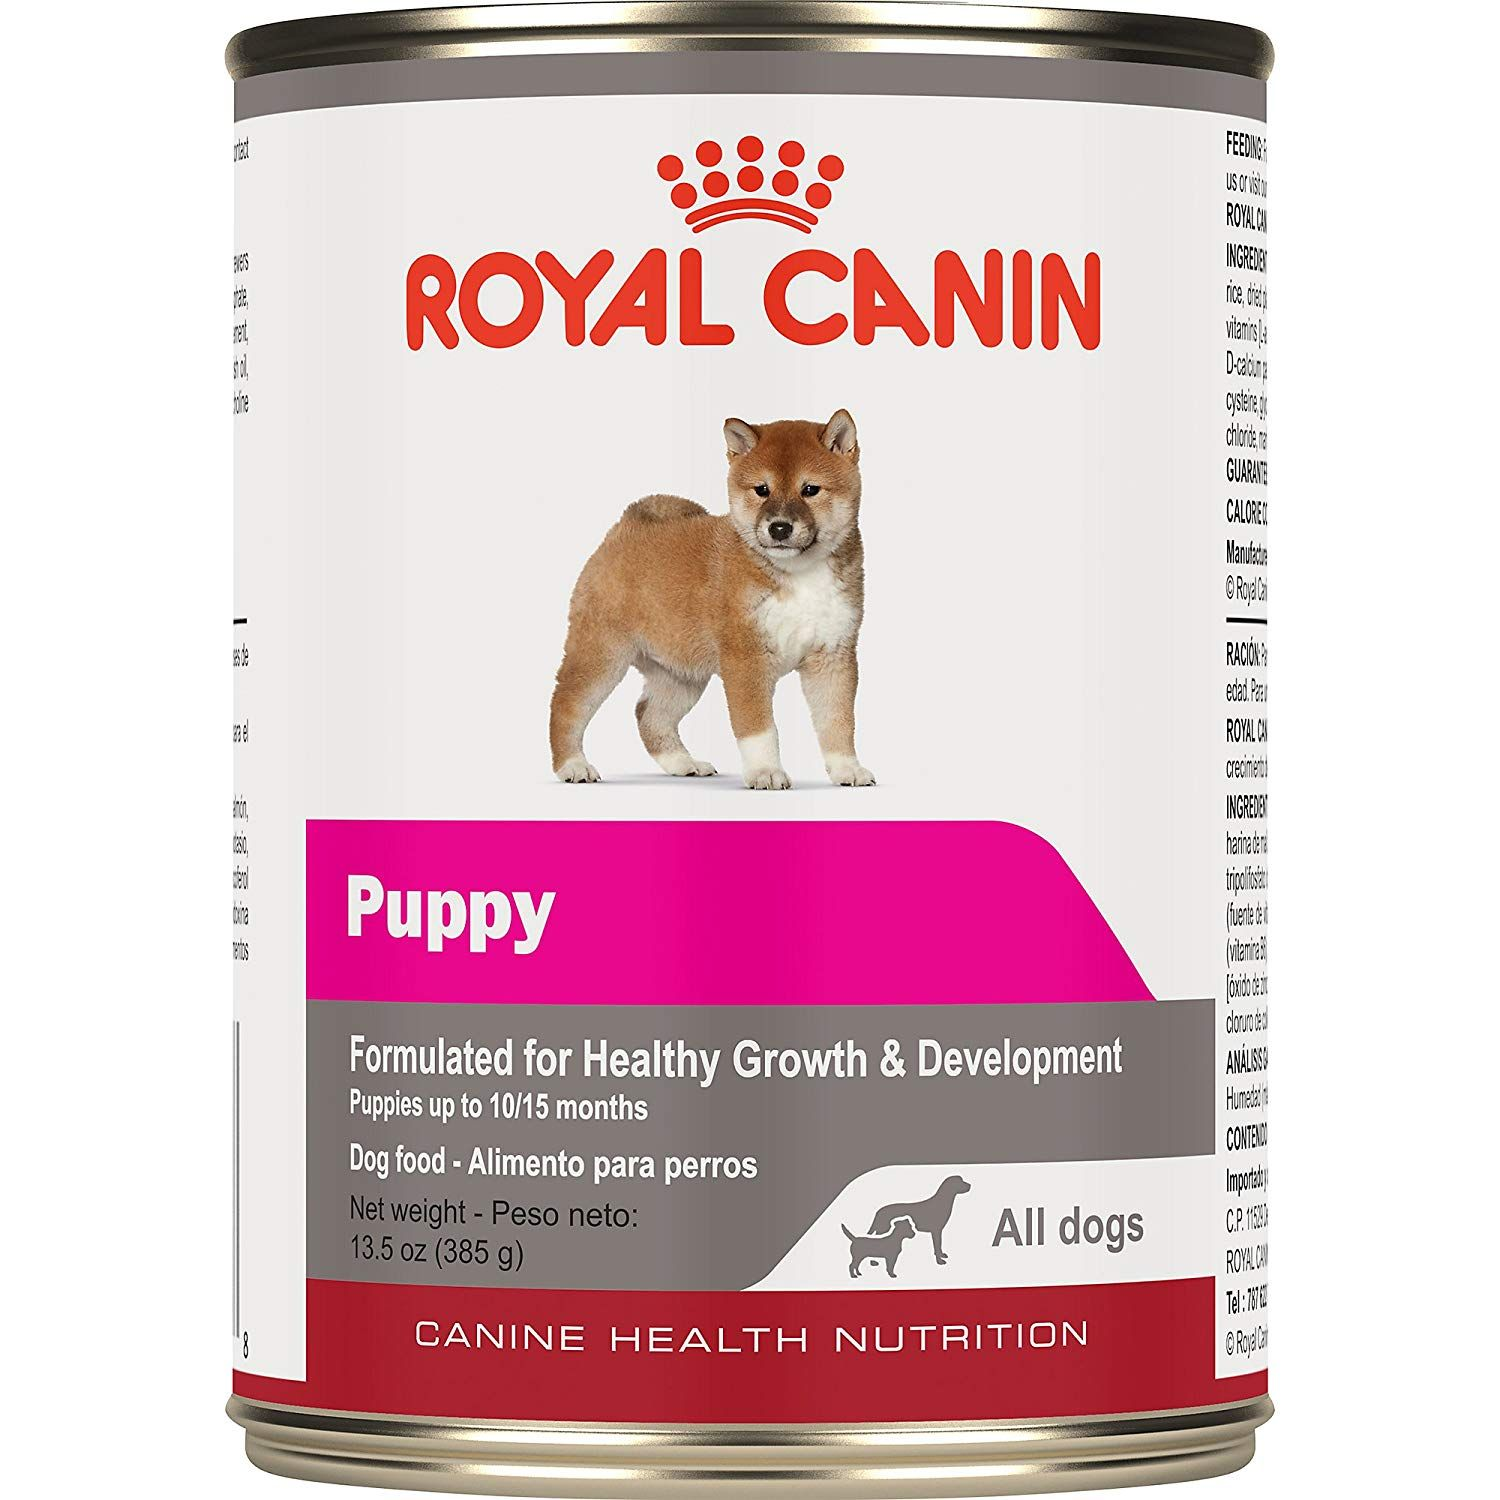 Royal canin 1 count canine health nutrition puppy in gel